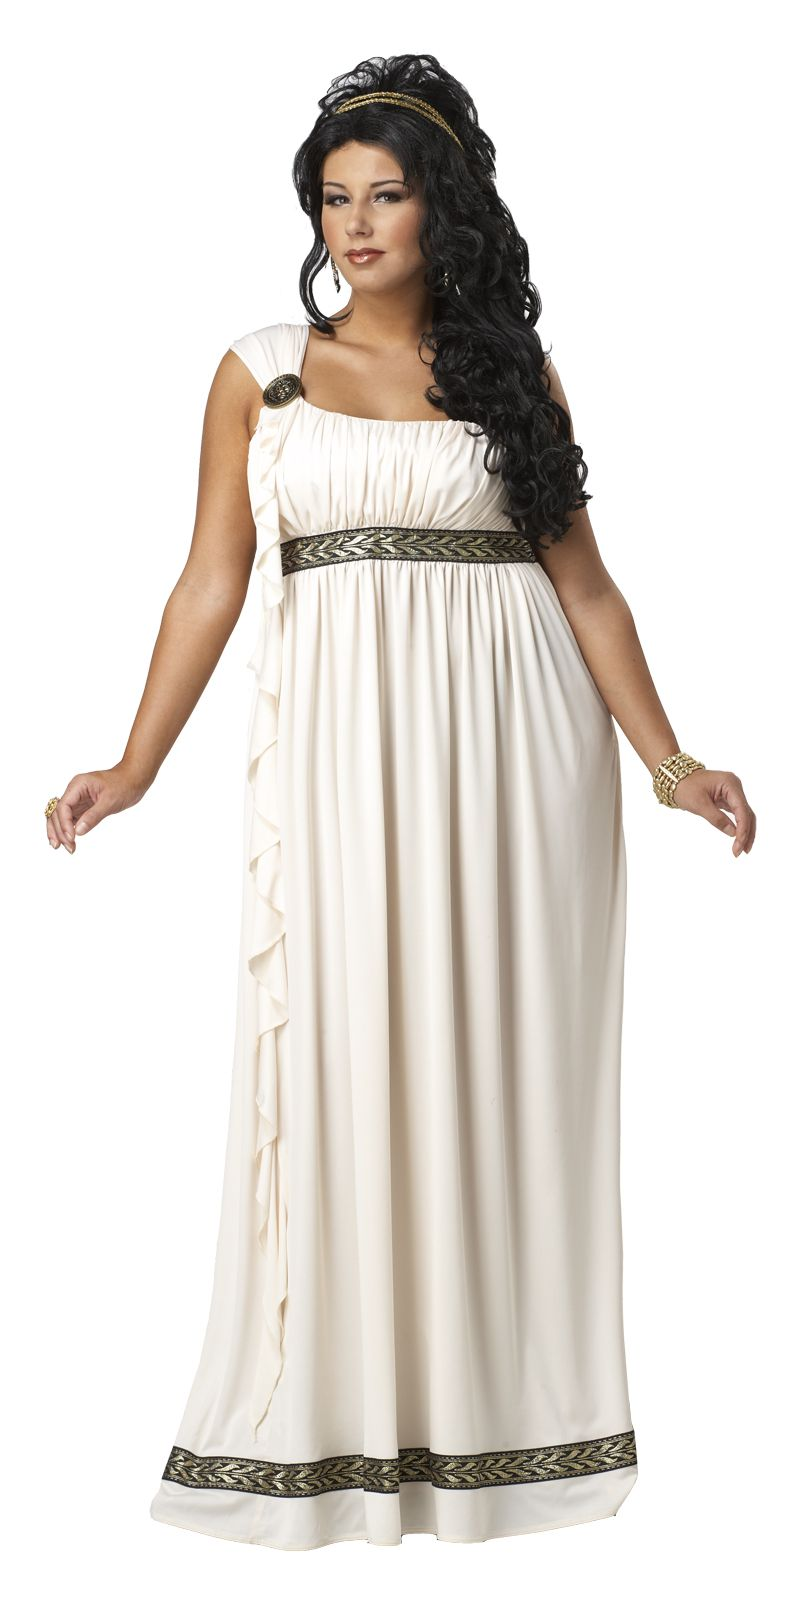 calypso goddess of the sea costume calgary alberta this goddess costume is perfect for halloween promotional events or for using your siren s - Helen Of Troy Halloween Costume